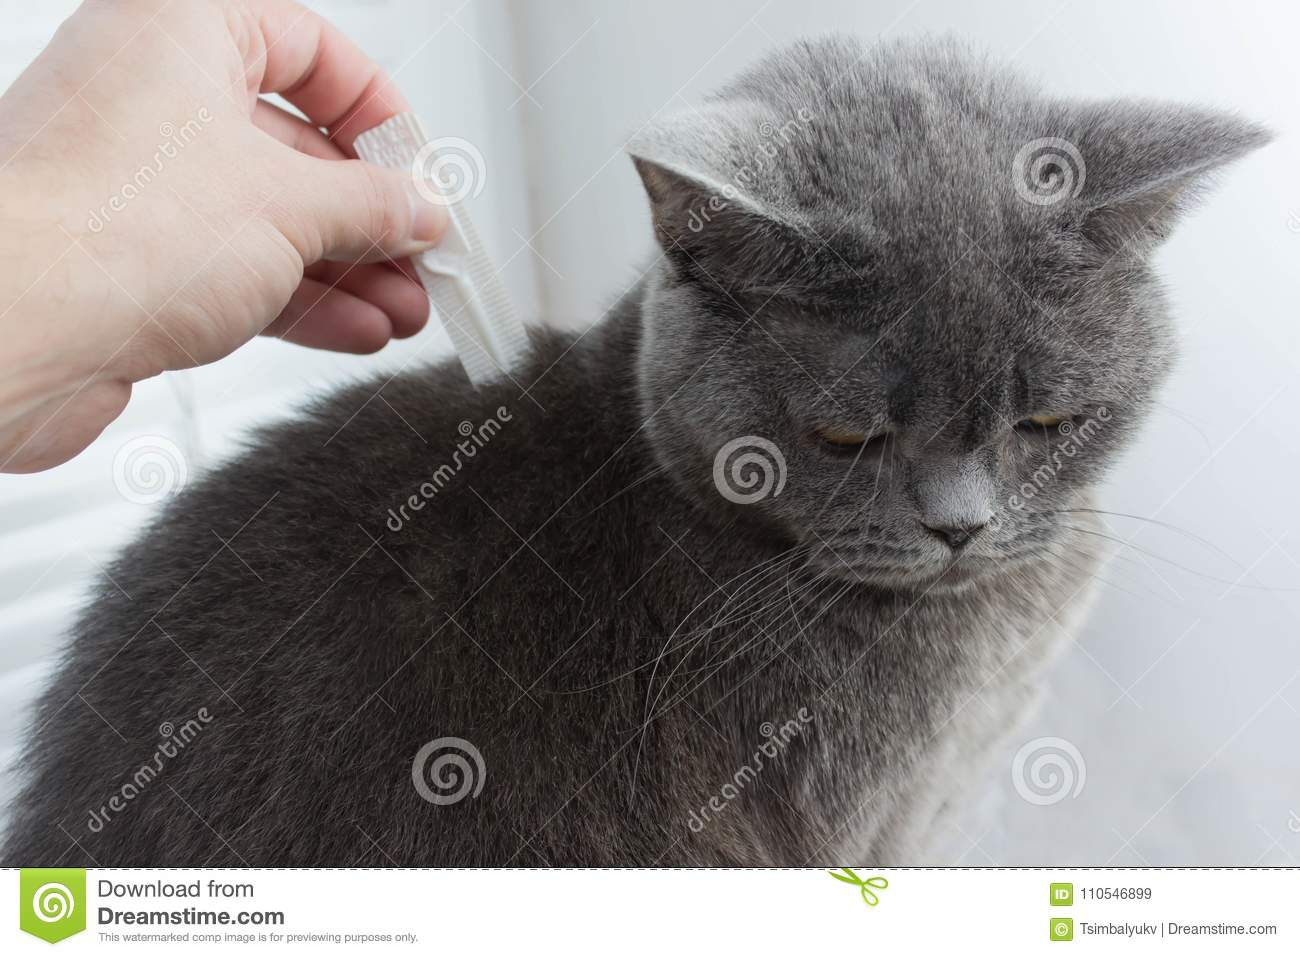 Lost hair cat because get tick on ears